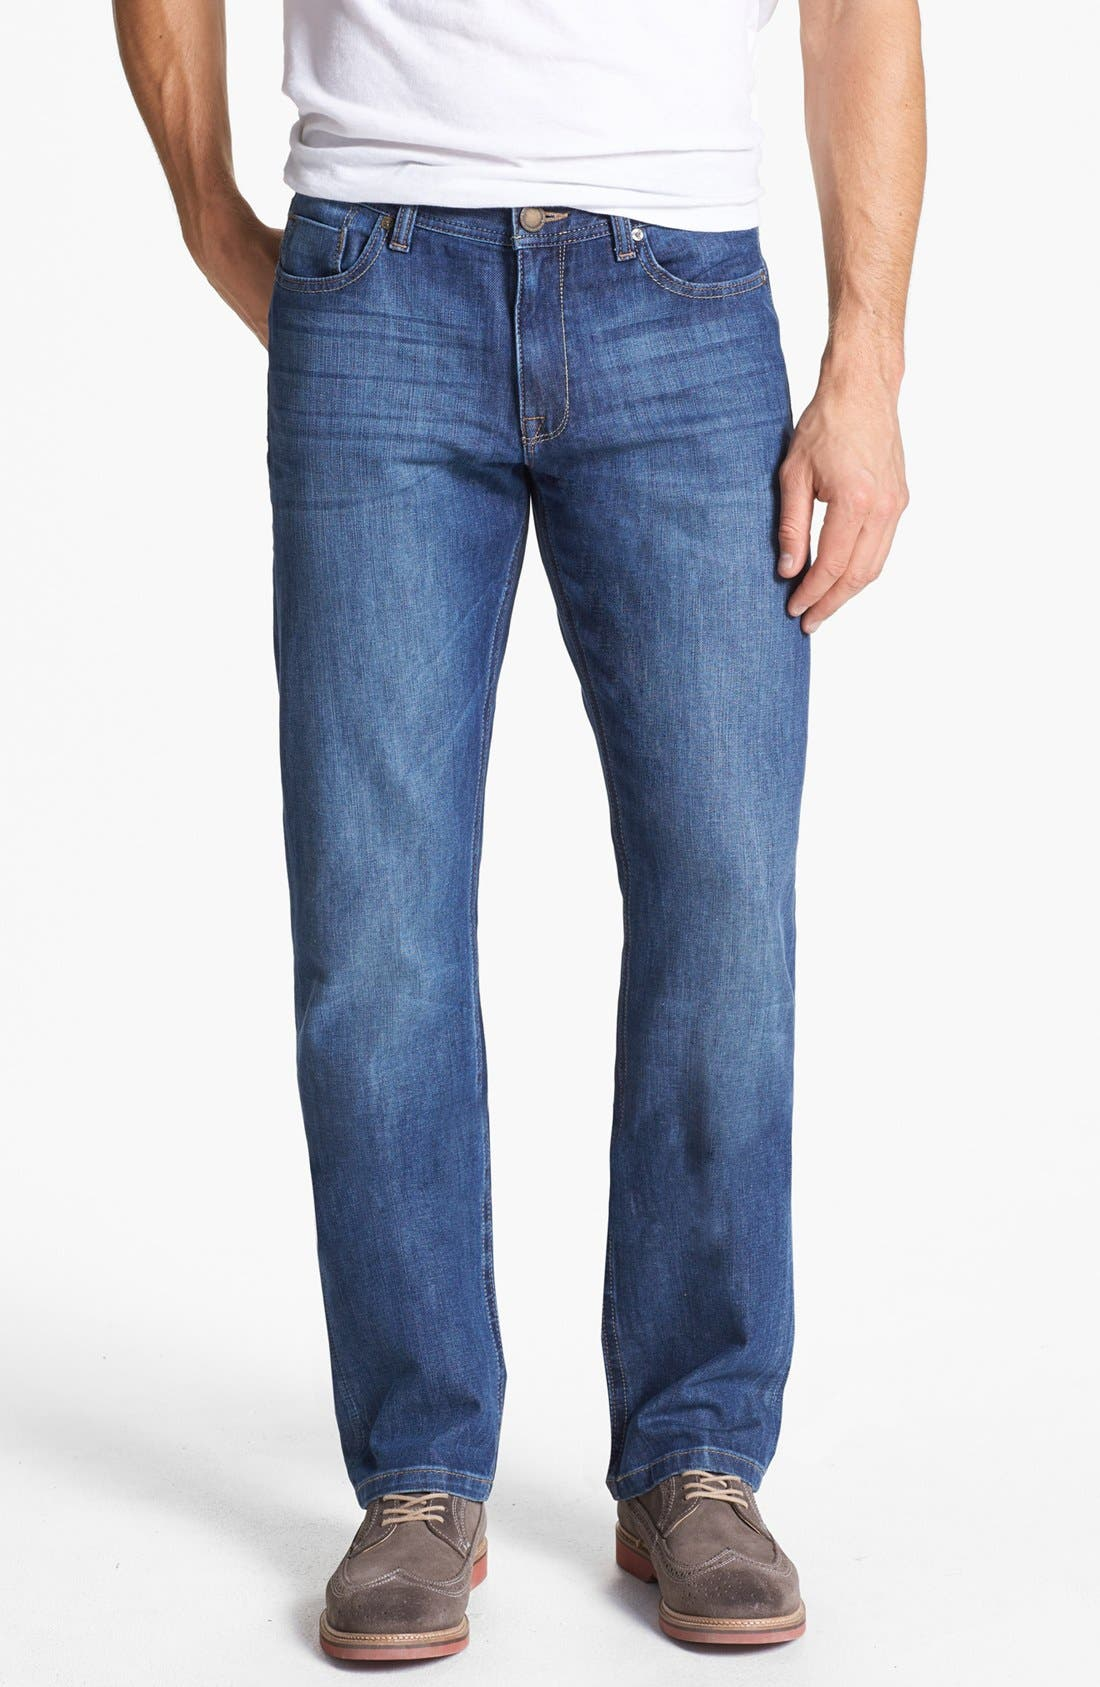 Alternate Image 1 Selected - DL1961 'Vince' Straight Leg Jeans (Charger)